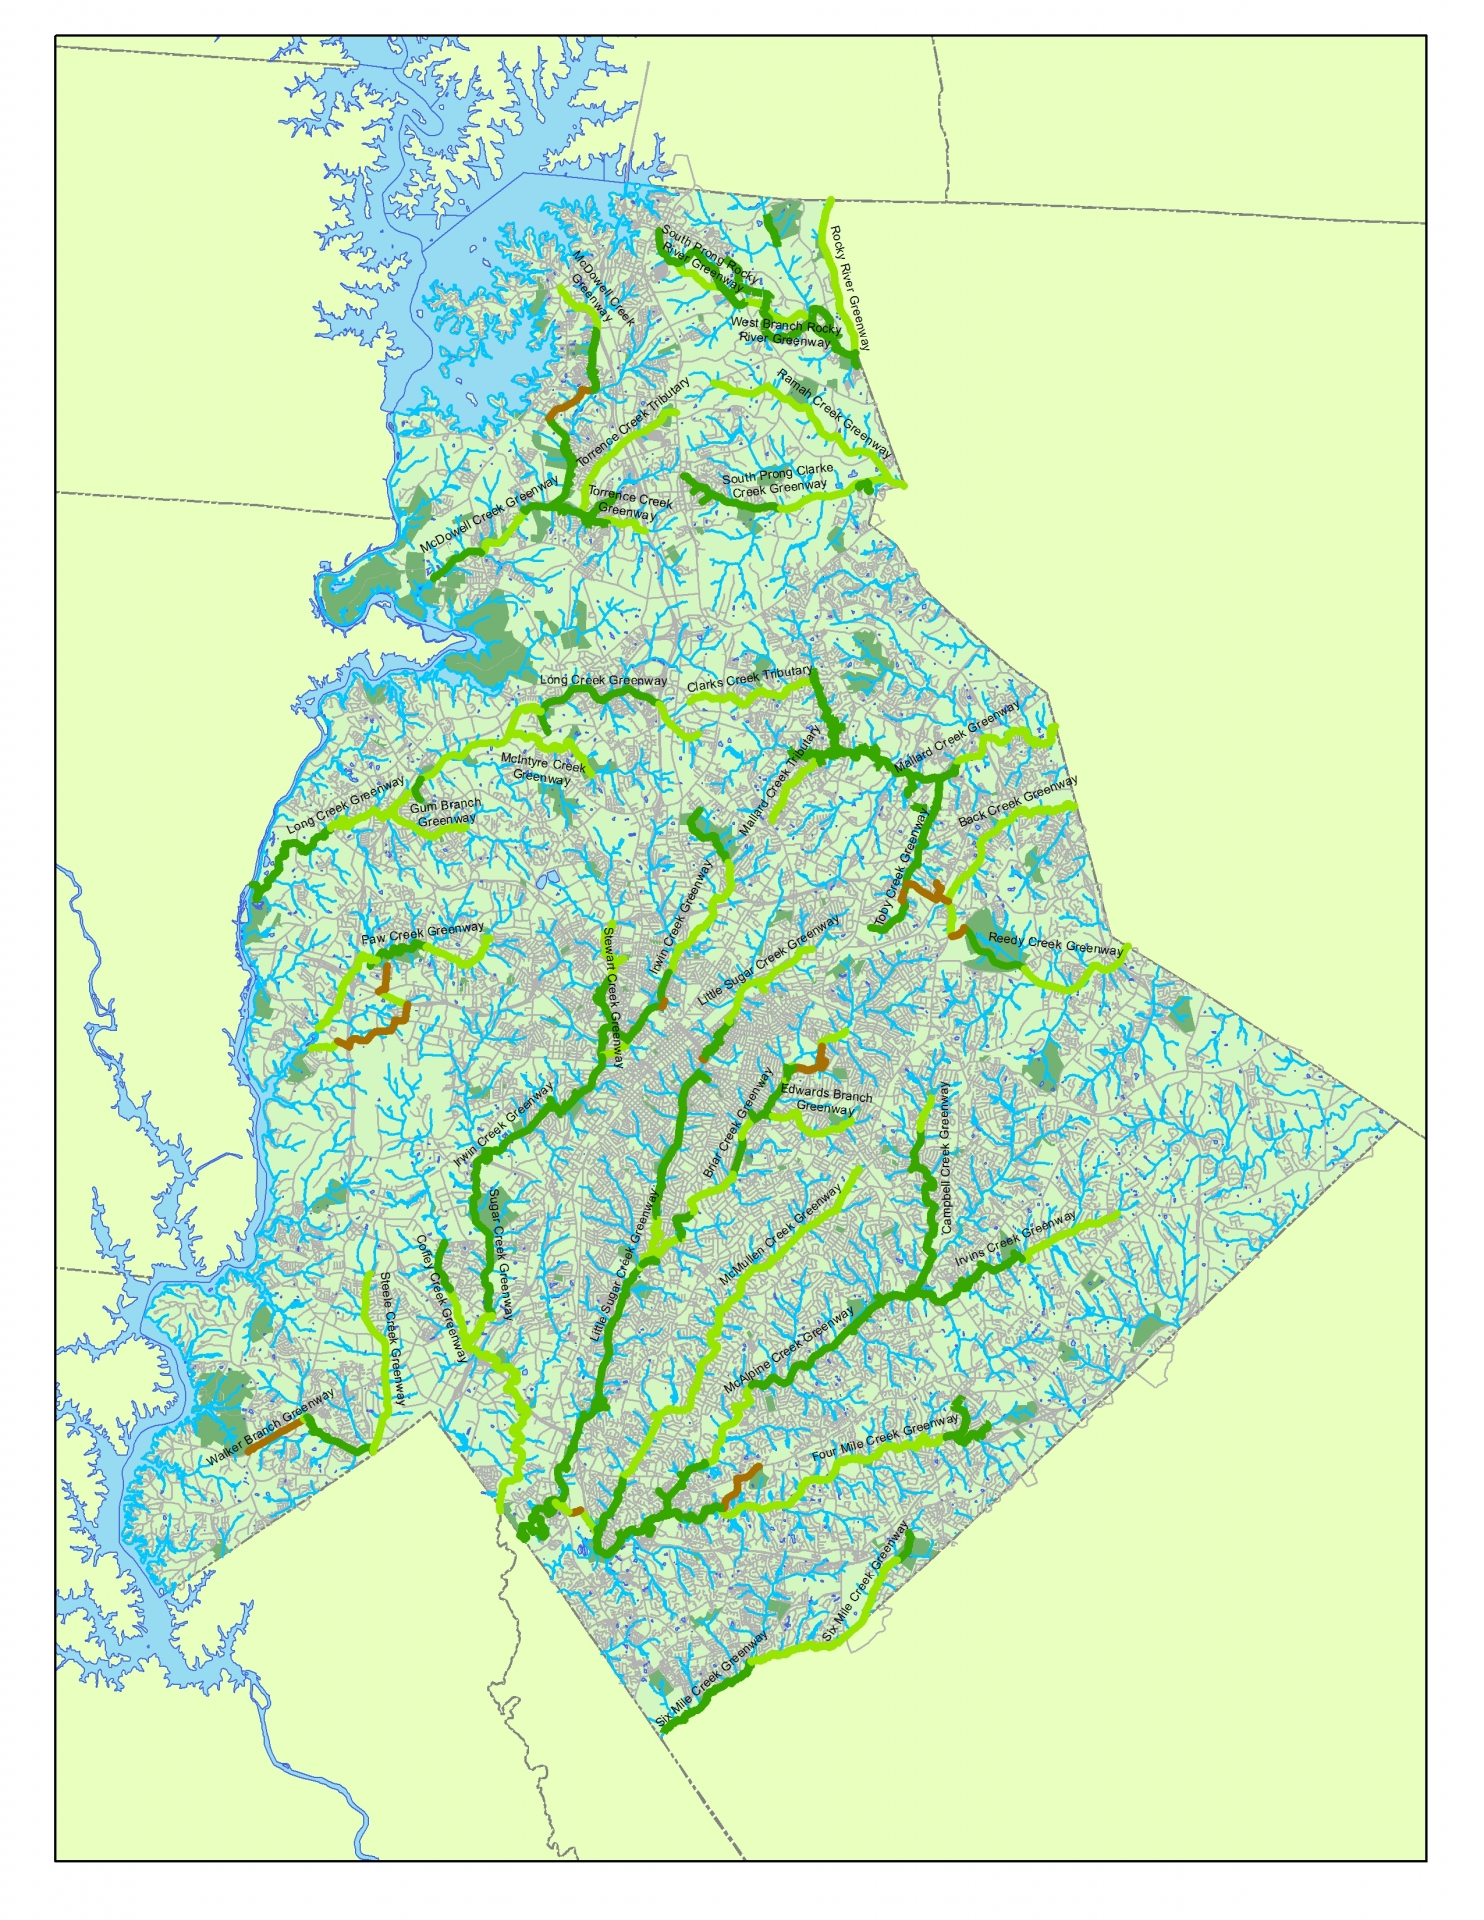 Click image for zoomable view. Greenways are in dark green; proposed greenways in light green; overland connectors in brown. Information from Mecklenburg County Park and Recreation Department.